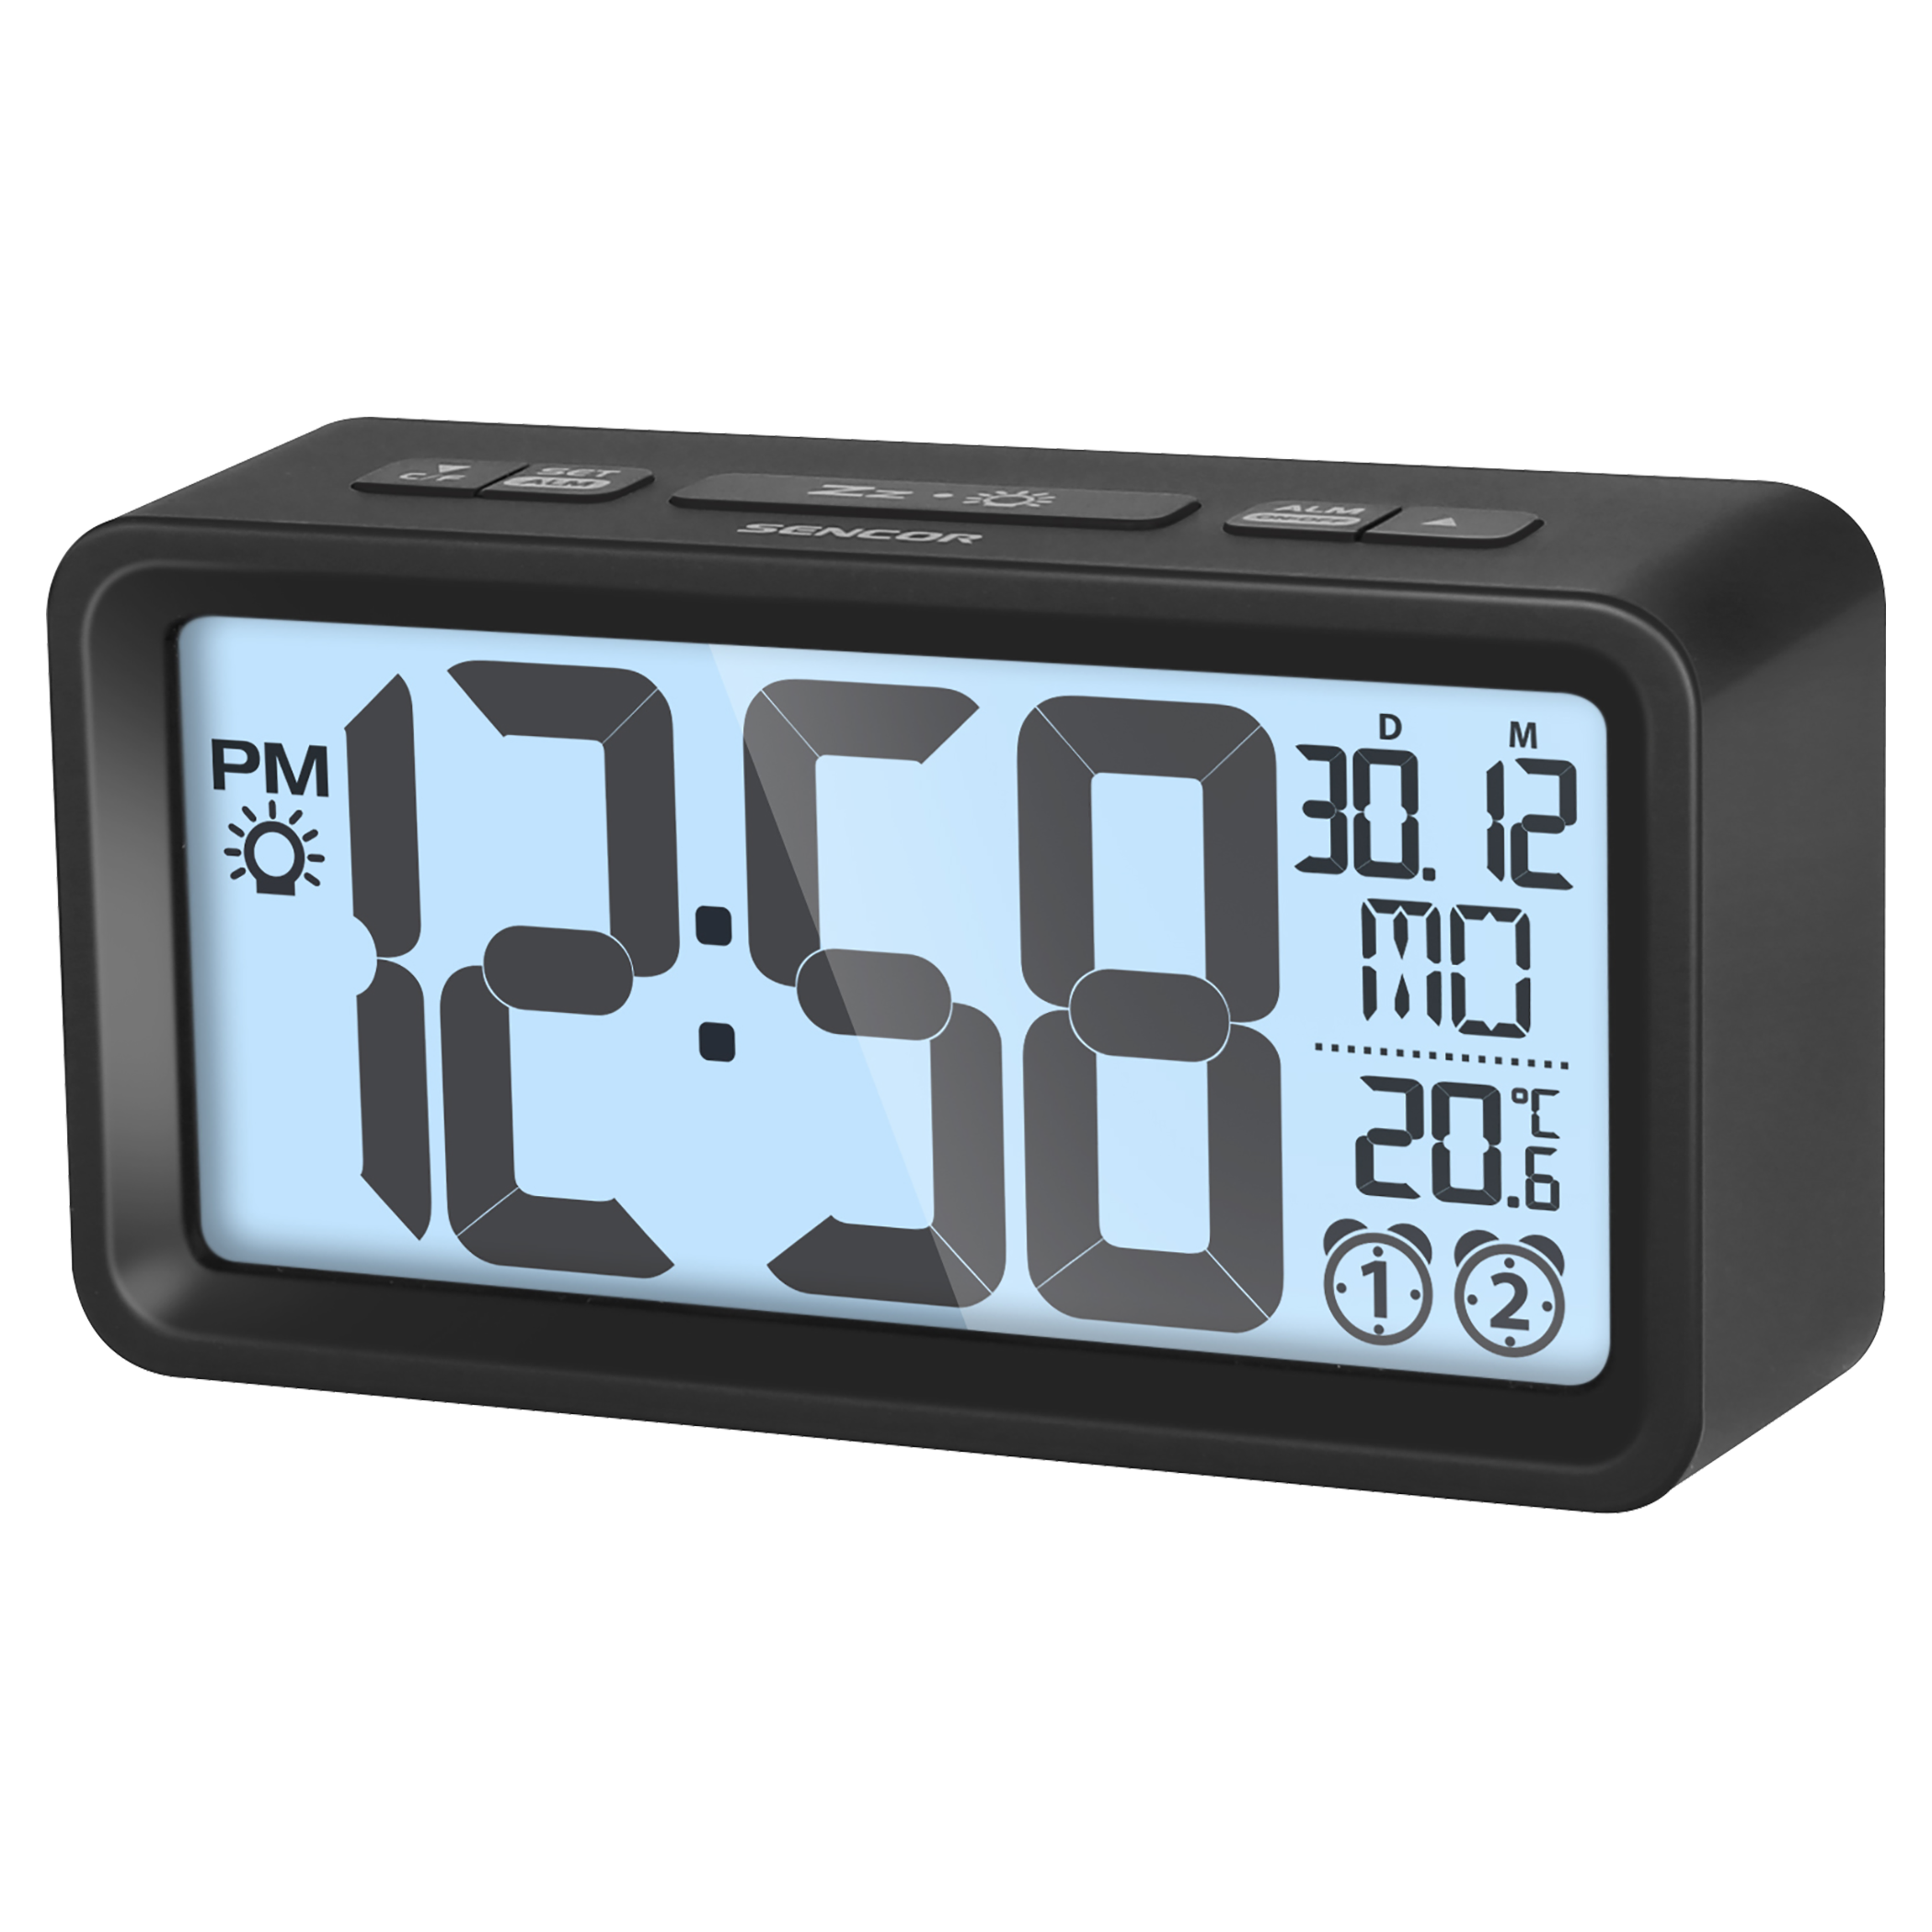 Digital alarm clock png. With thermometer sdc b